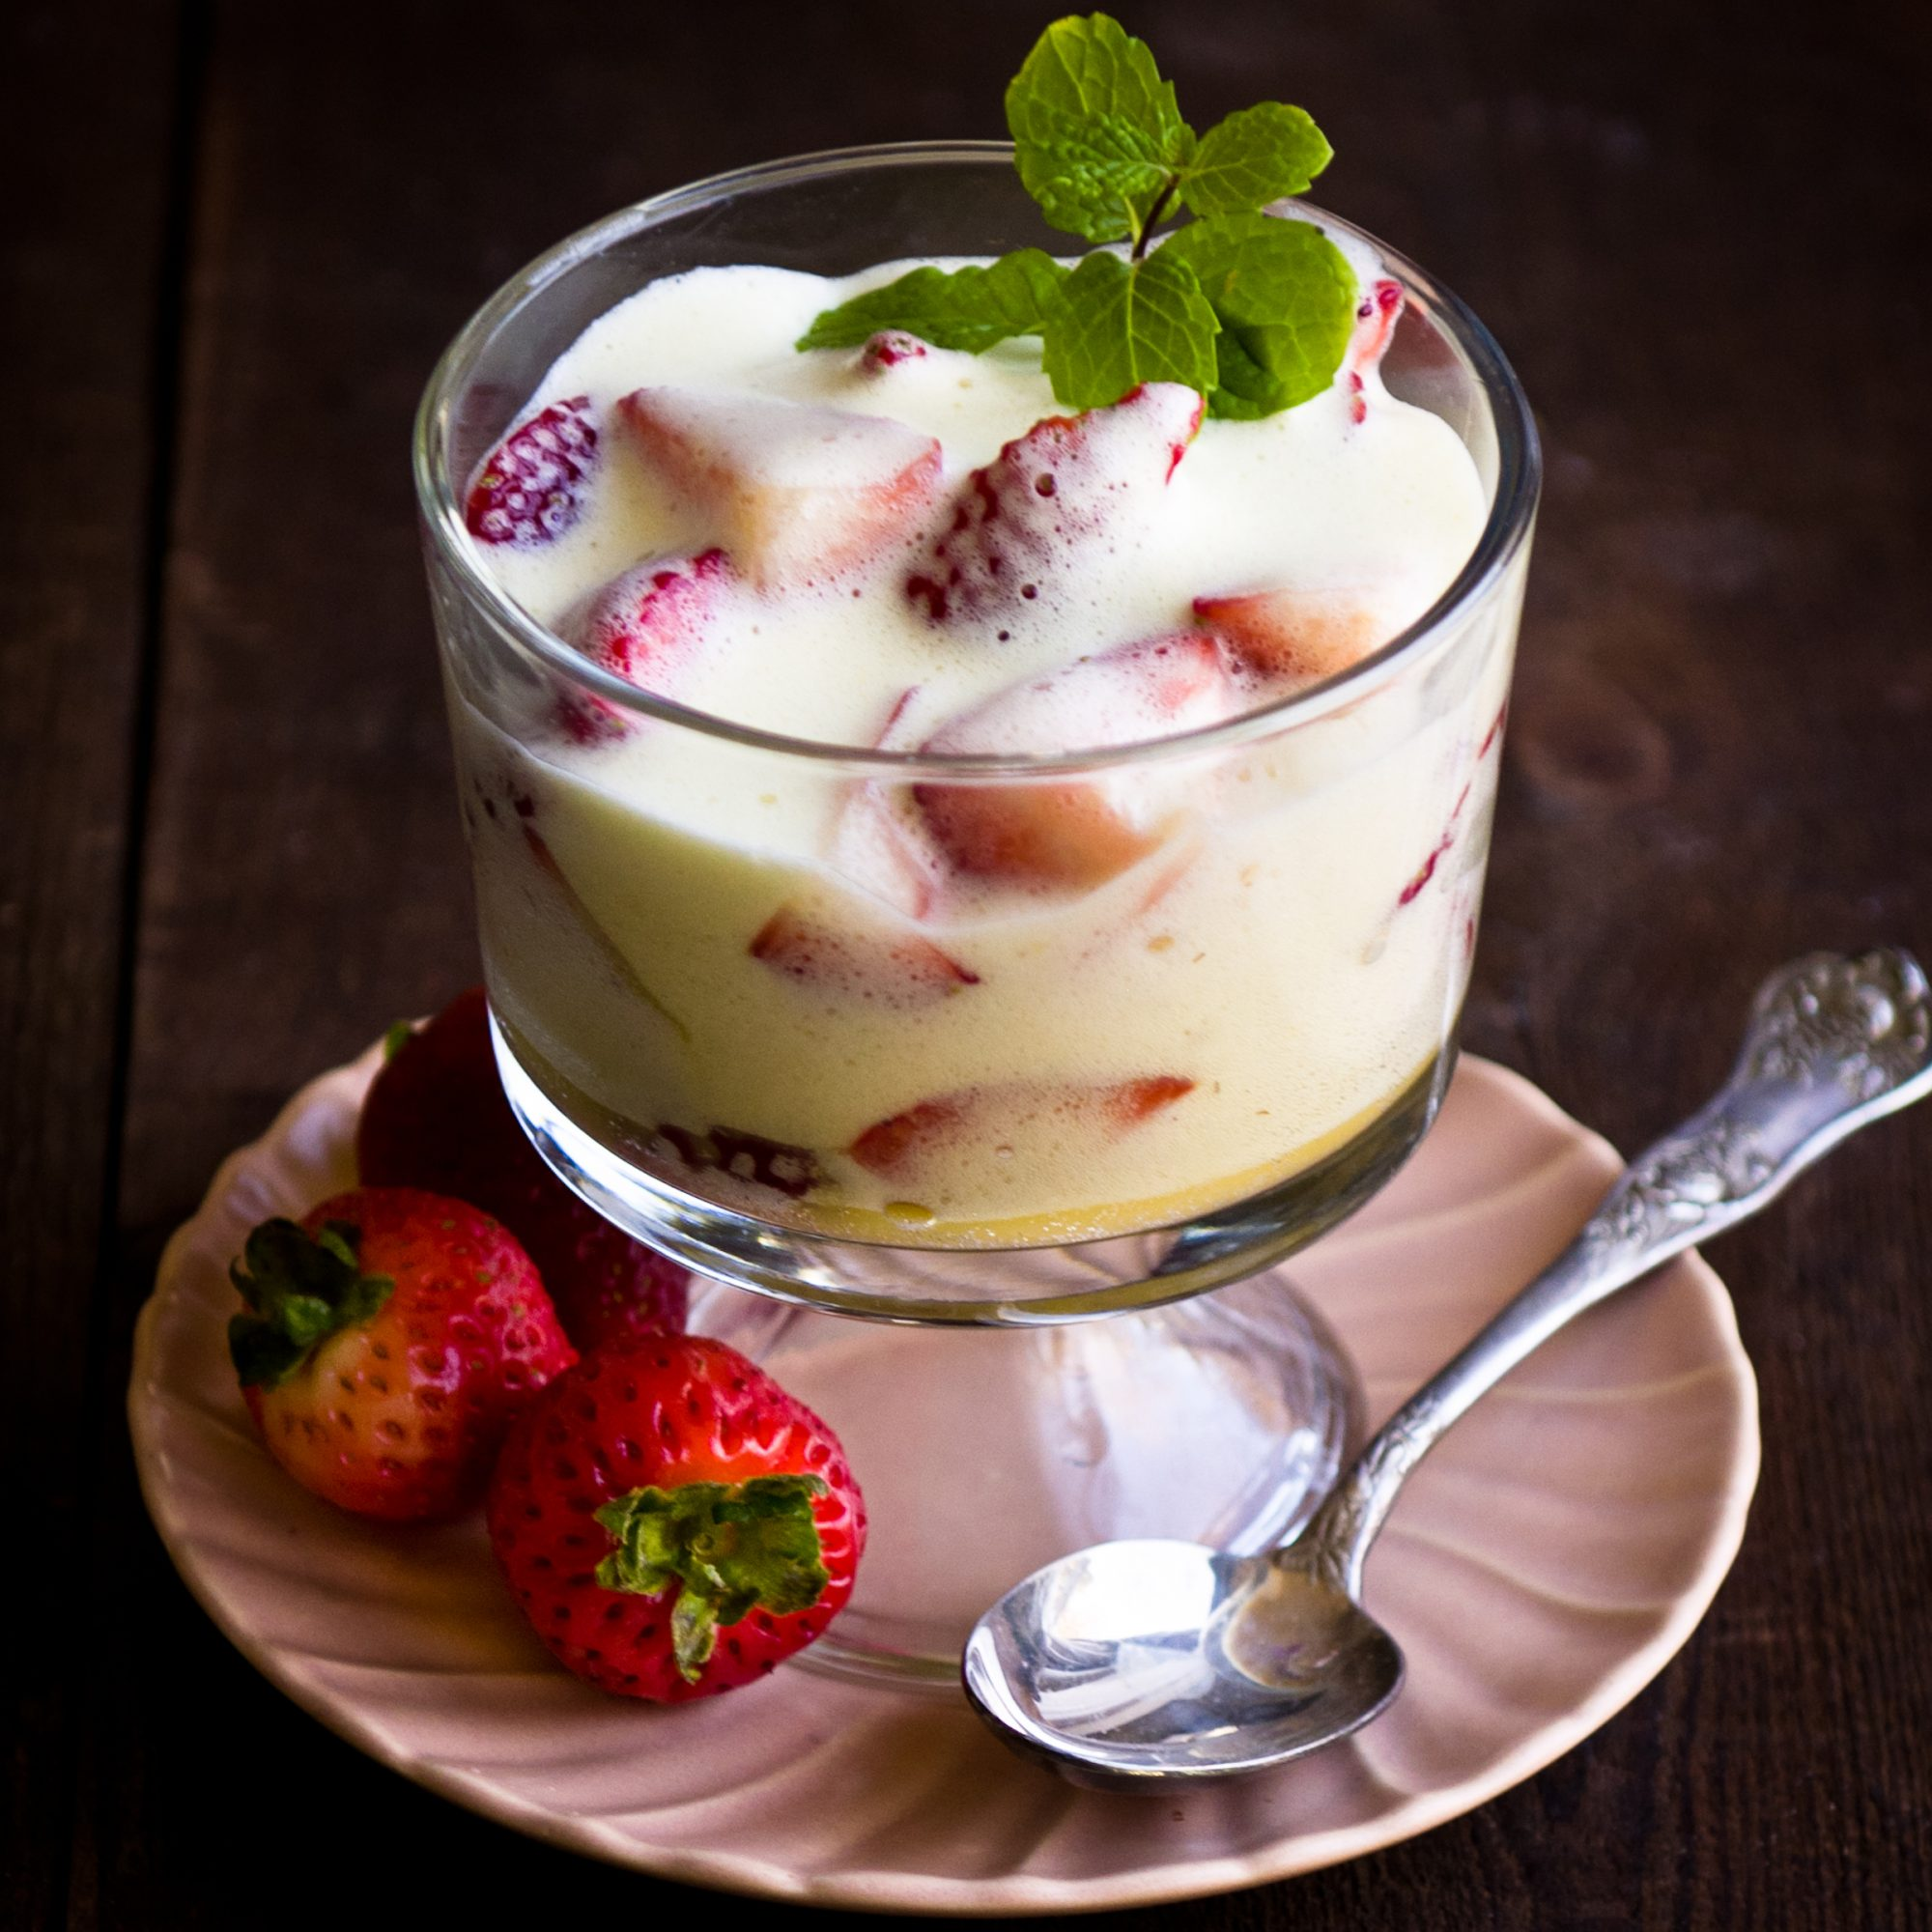 Day 9: Zabaglione with Strawberries